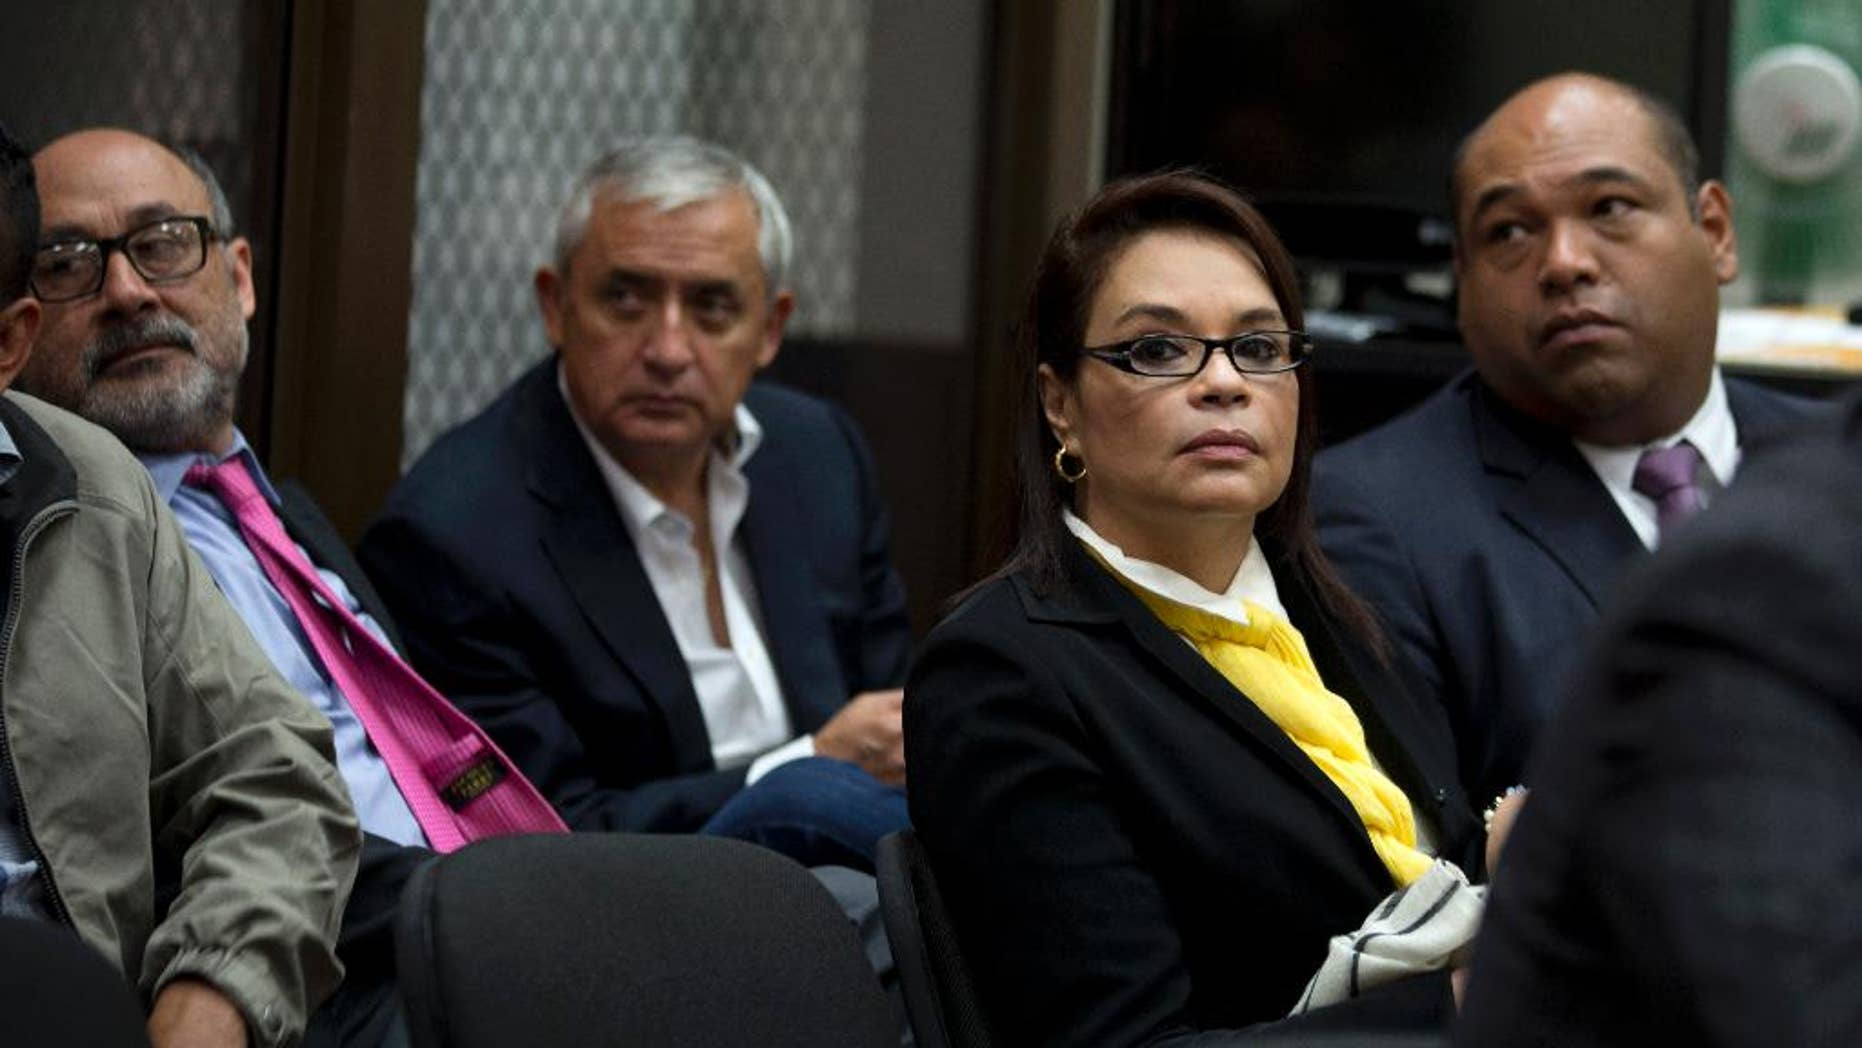 FILE - In this April 20, 2016, file photo, Guatemala's former Vice-President Roxana Baldetti, wearing a yellow scarf, and former President Otto Perez Molina, back center, wait for the start of a court hearing in Guatemala City. Perez and Baldetti have been formally charged on Thursday, June 16, 2016, in a sprawling corruption scheme that emptied government coffers and laundered money to be spent on Miami shopping sprees, real estate and luxury vehicles. (AP Photo/Moises Castillo, File)